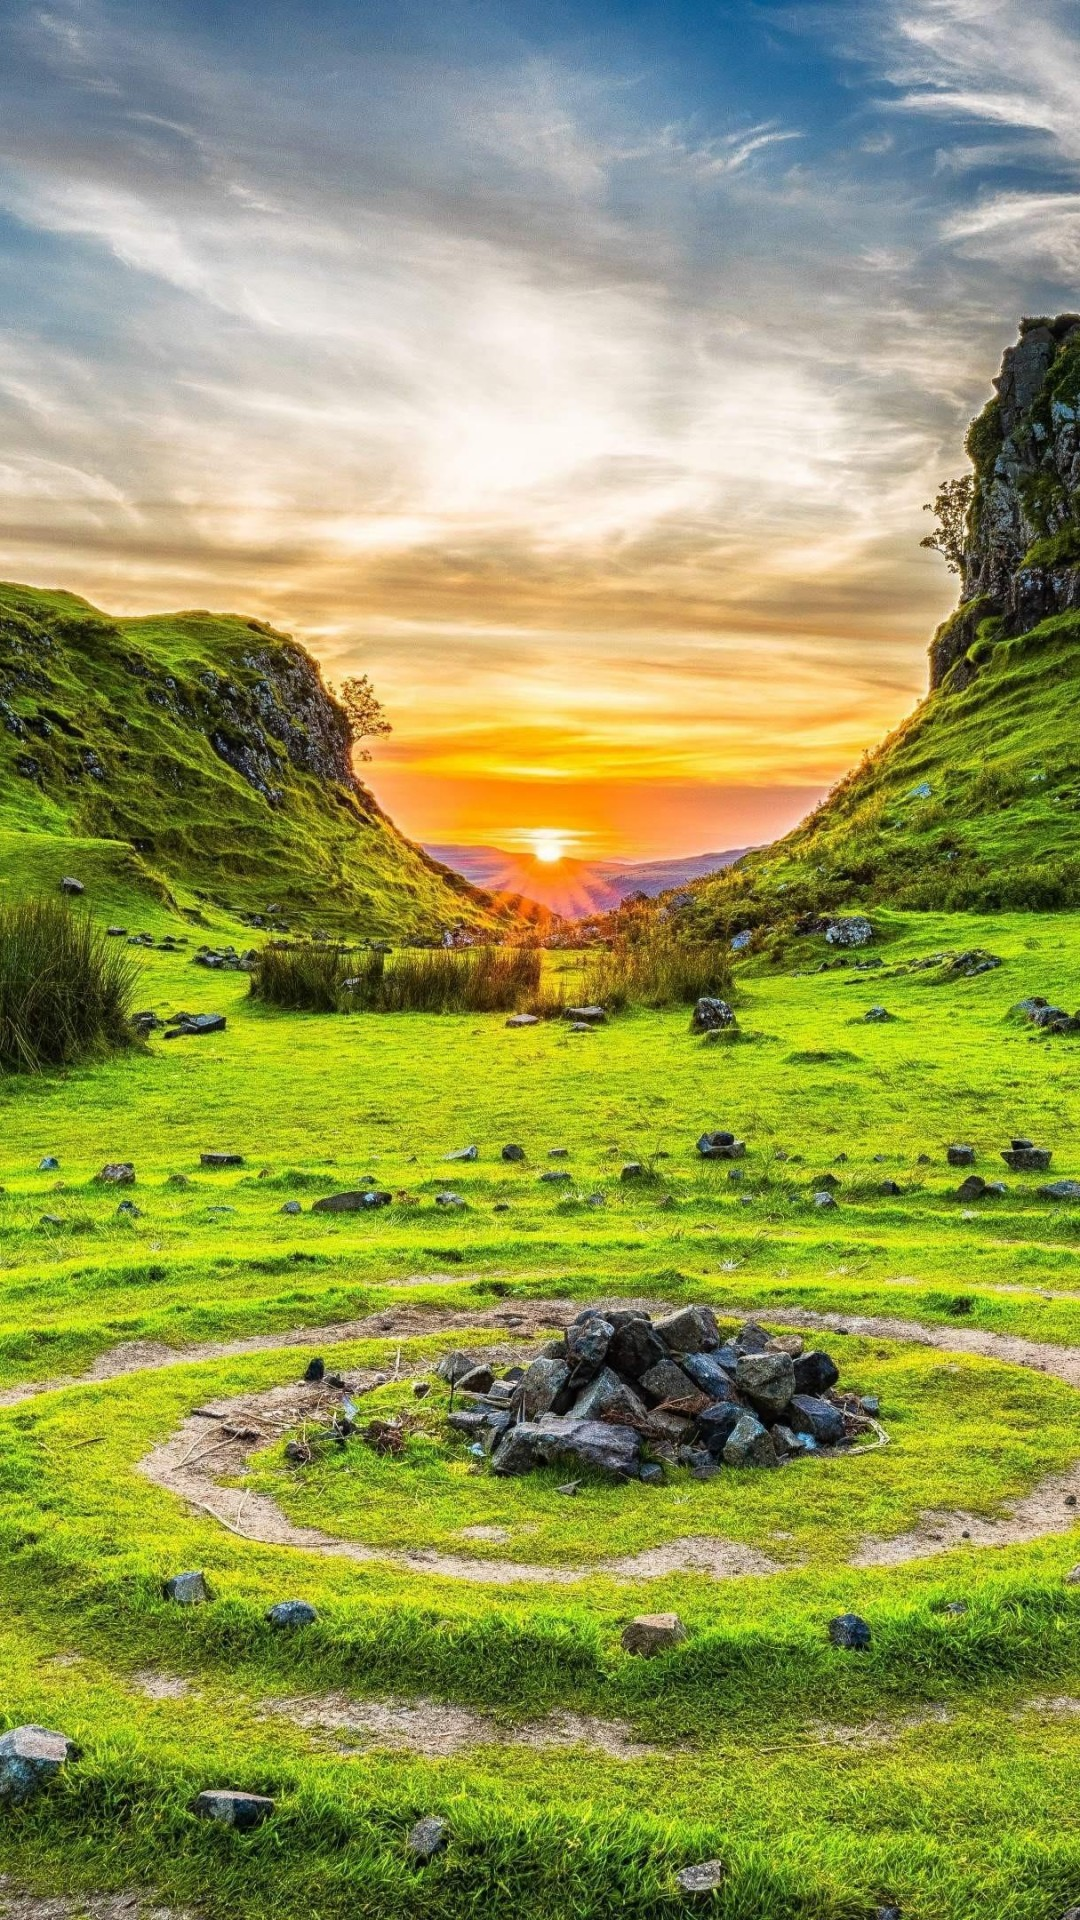 Wallpaper Nature 8k: Wallpaper Fairy Glen, Isle Of Skye, Scotland, Europe